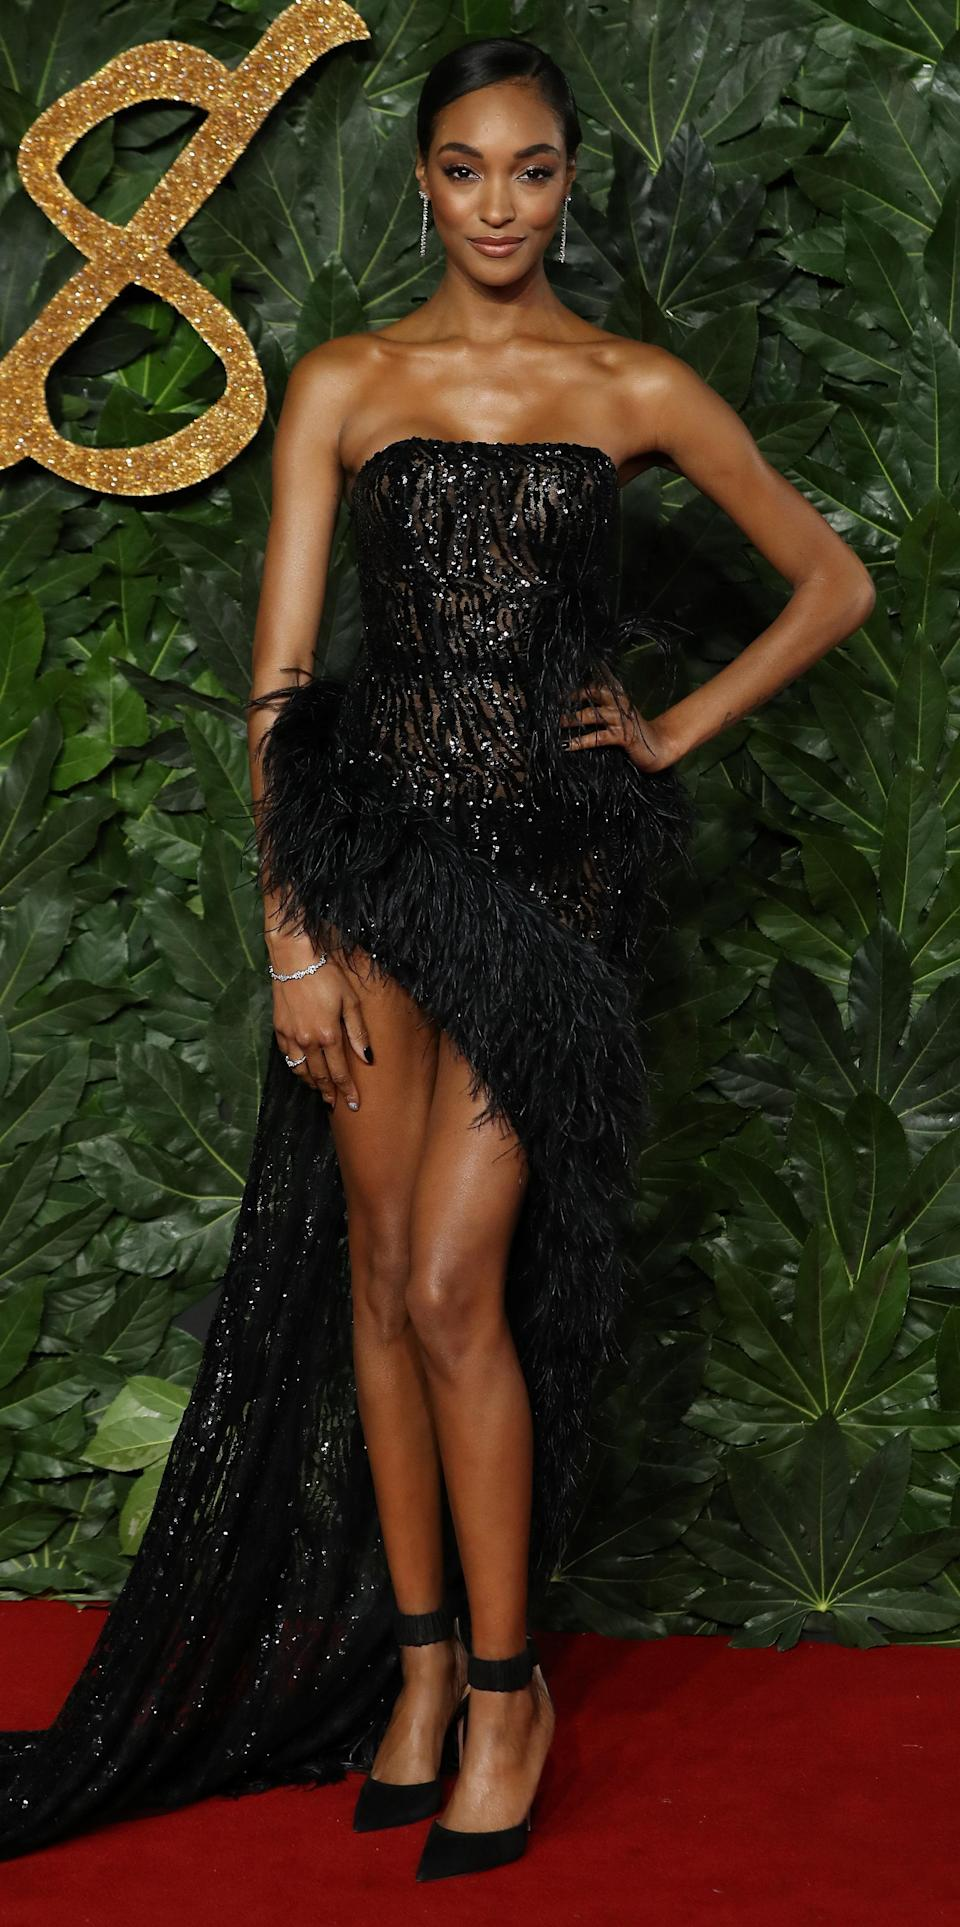 <p>Three's a trend: model Jourdan Dunn followed Cindy Crawford's exmaple in a feathered thigh-high split dress on the red carpet. To accessorise the look, the model wore Lark & Berry's Knot earrings, Aerides Diamond Dress ring and Wave Diamond bracelet – all from the brand's Atelier collection. <em>[Photo: Getty]</em> </p>